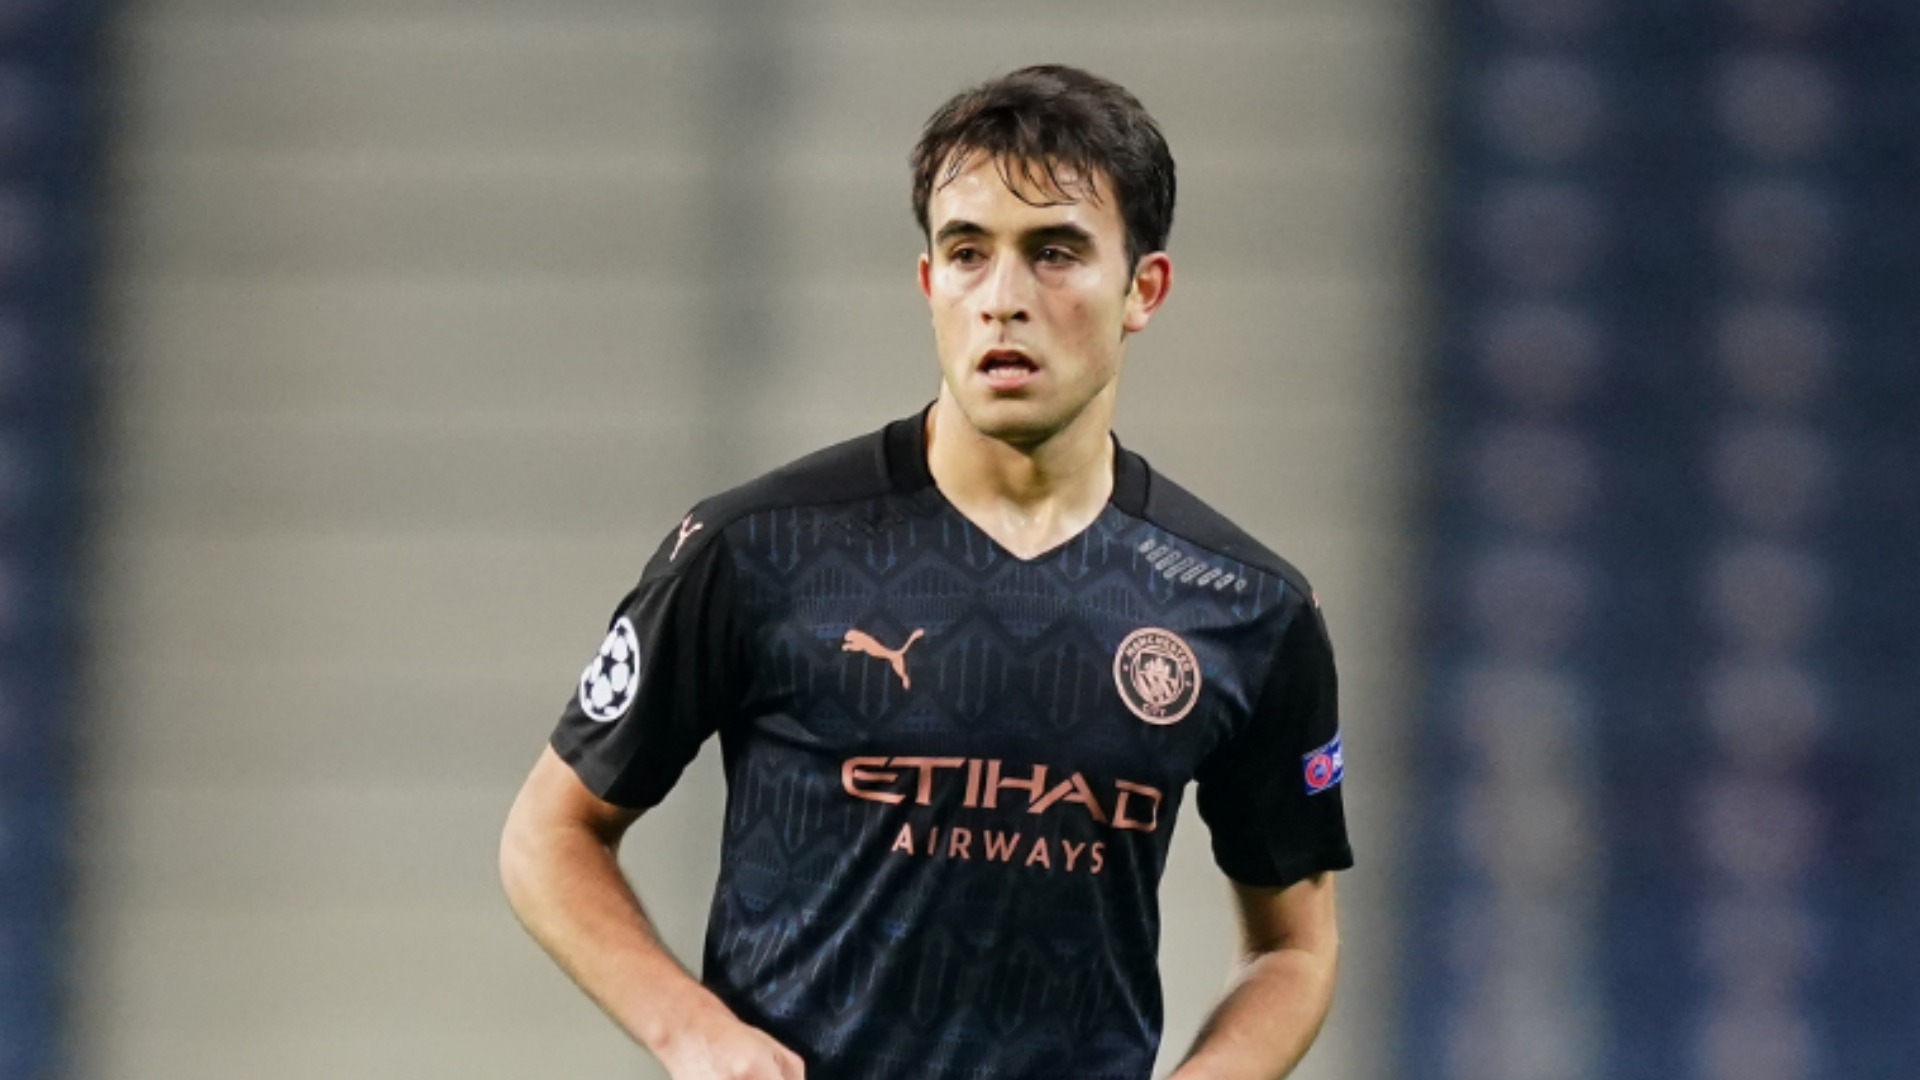 Eric Garcia would go unpaid to secure Barca return from Man City, claims presidential candidate